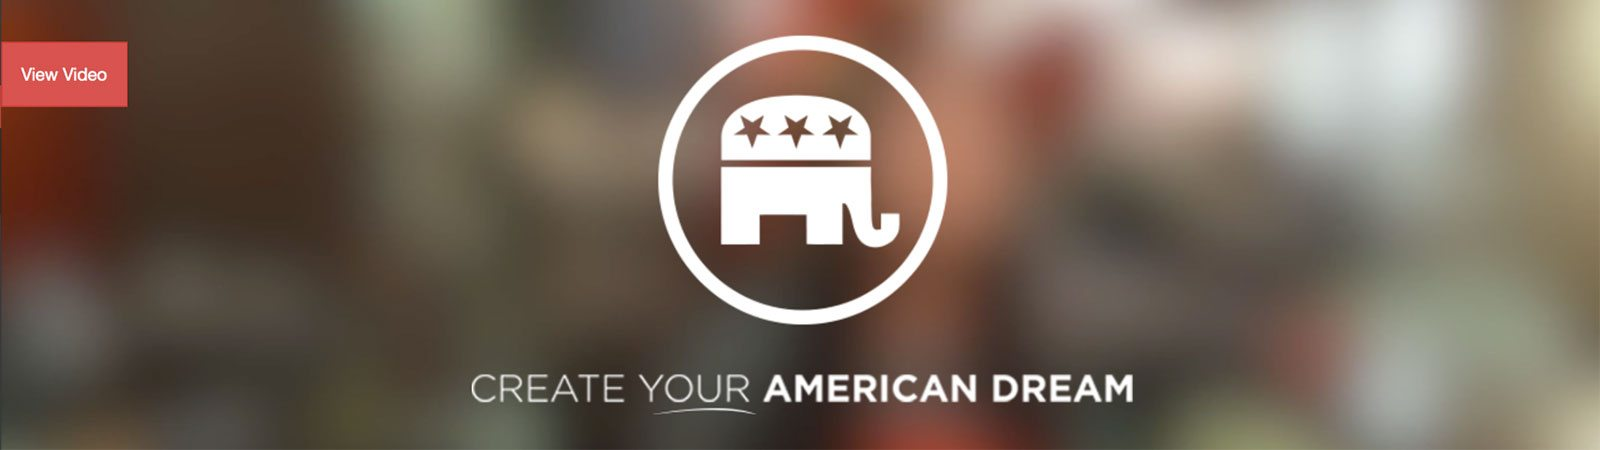 CREATE YOUR<br>AMERICAN DREAM